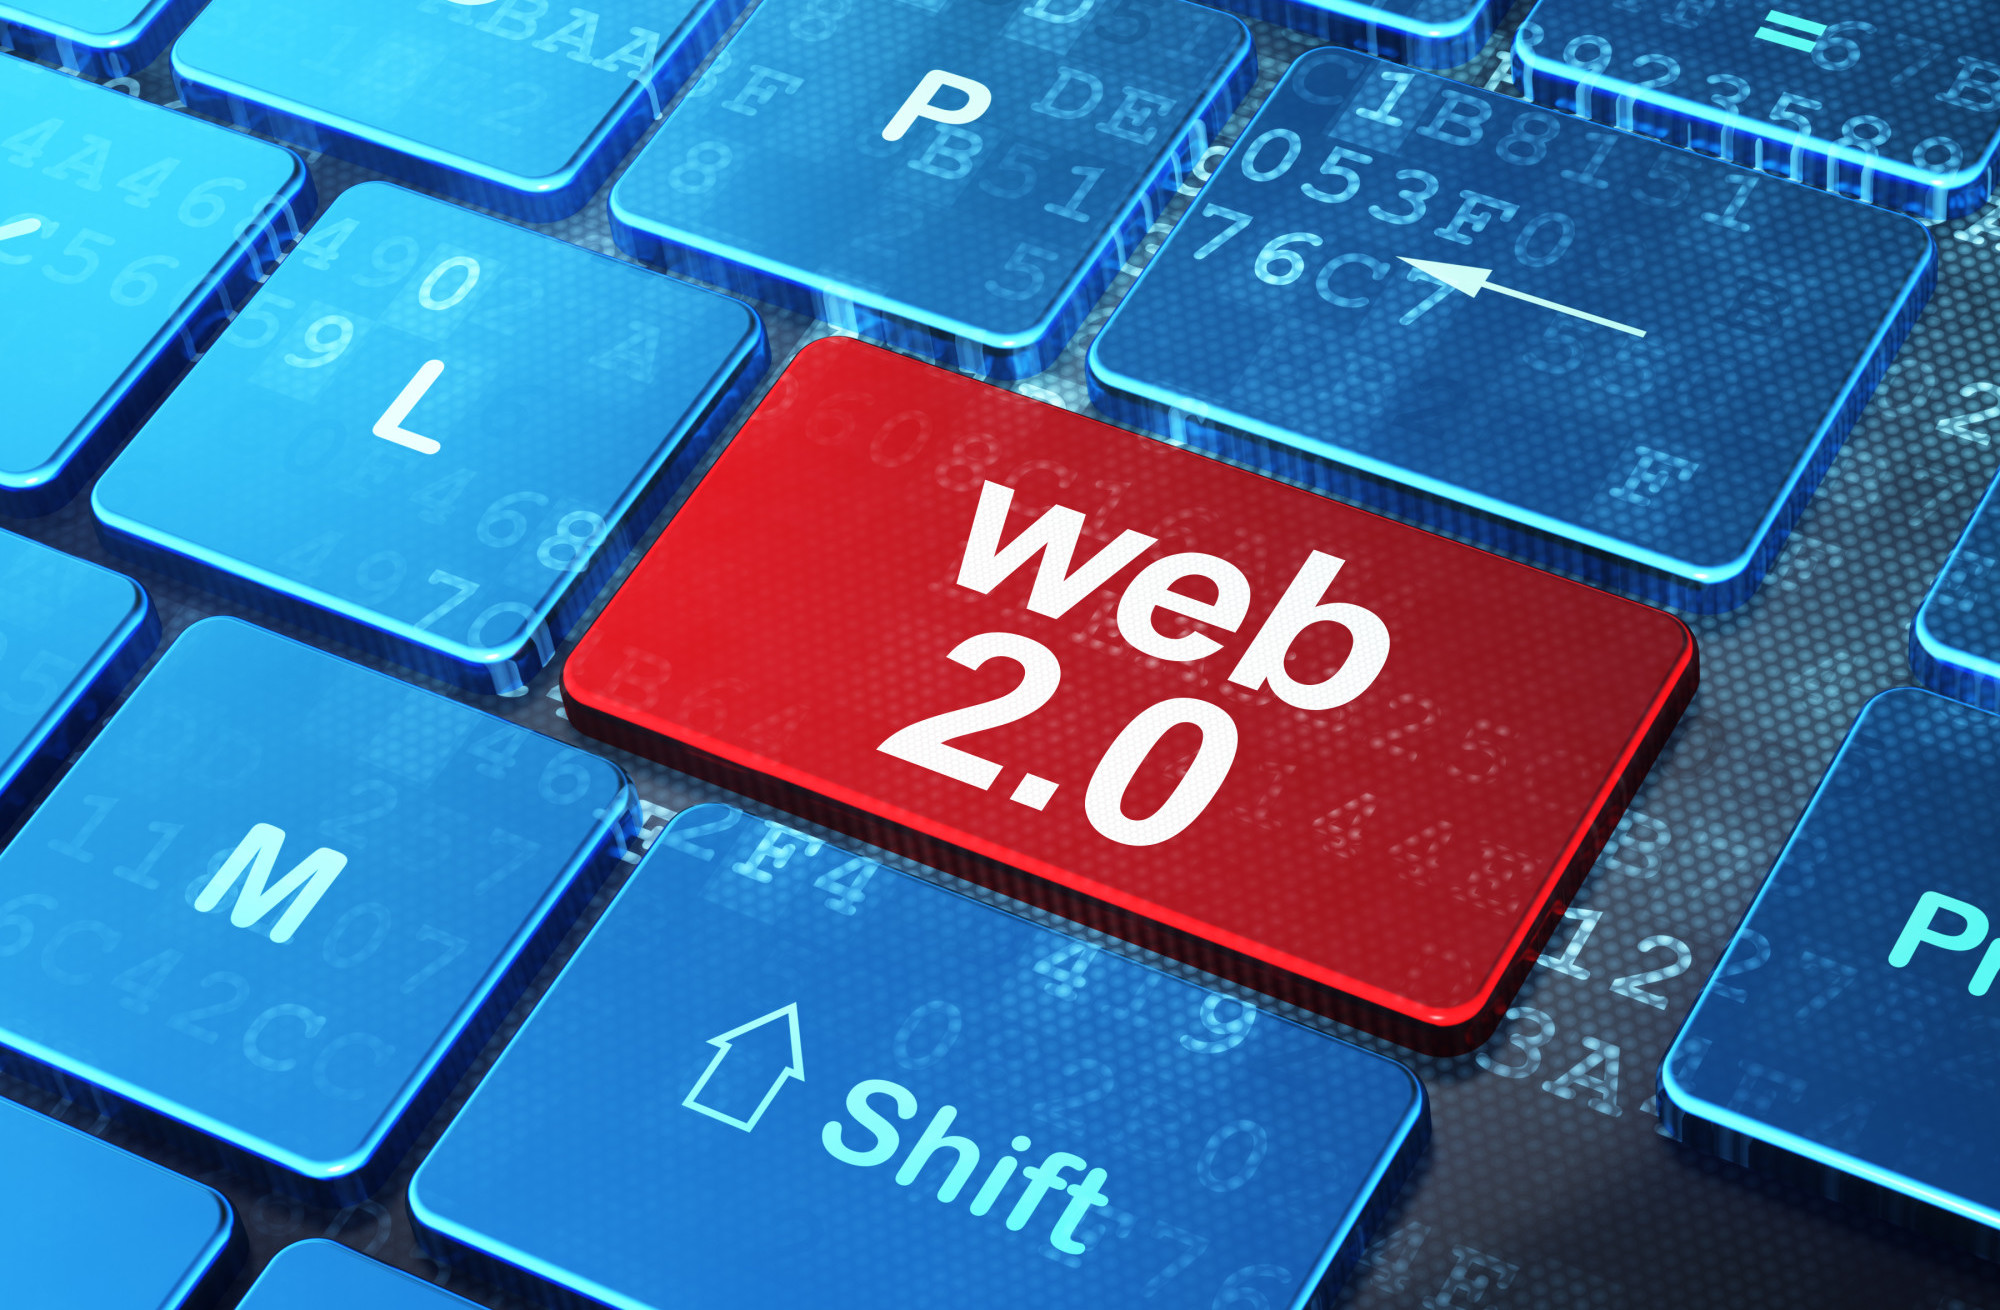 Offer 12 Web 2.0 backlinks